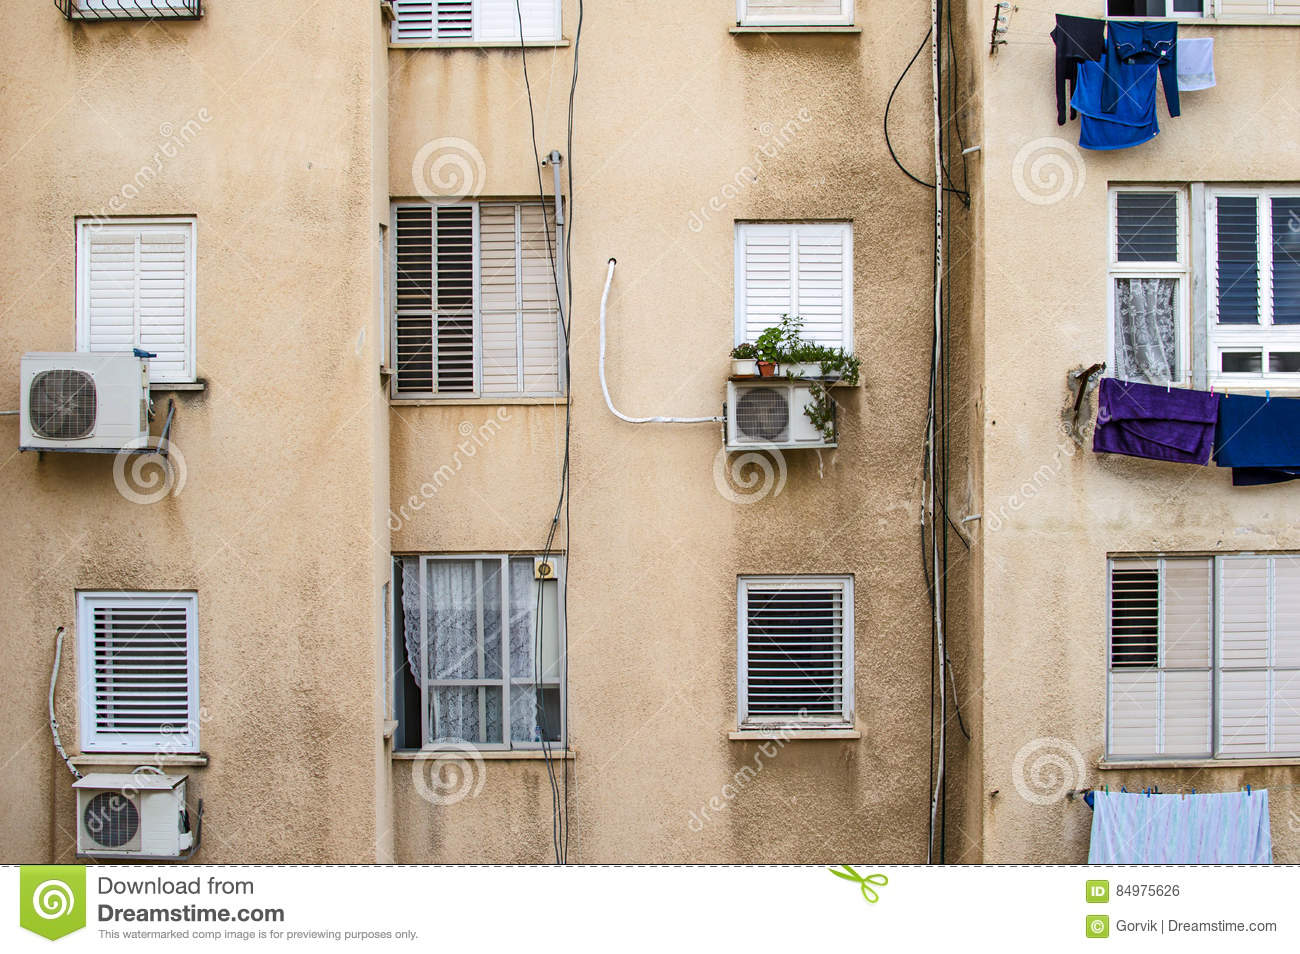 The wall of an apartment house